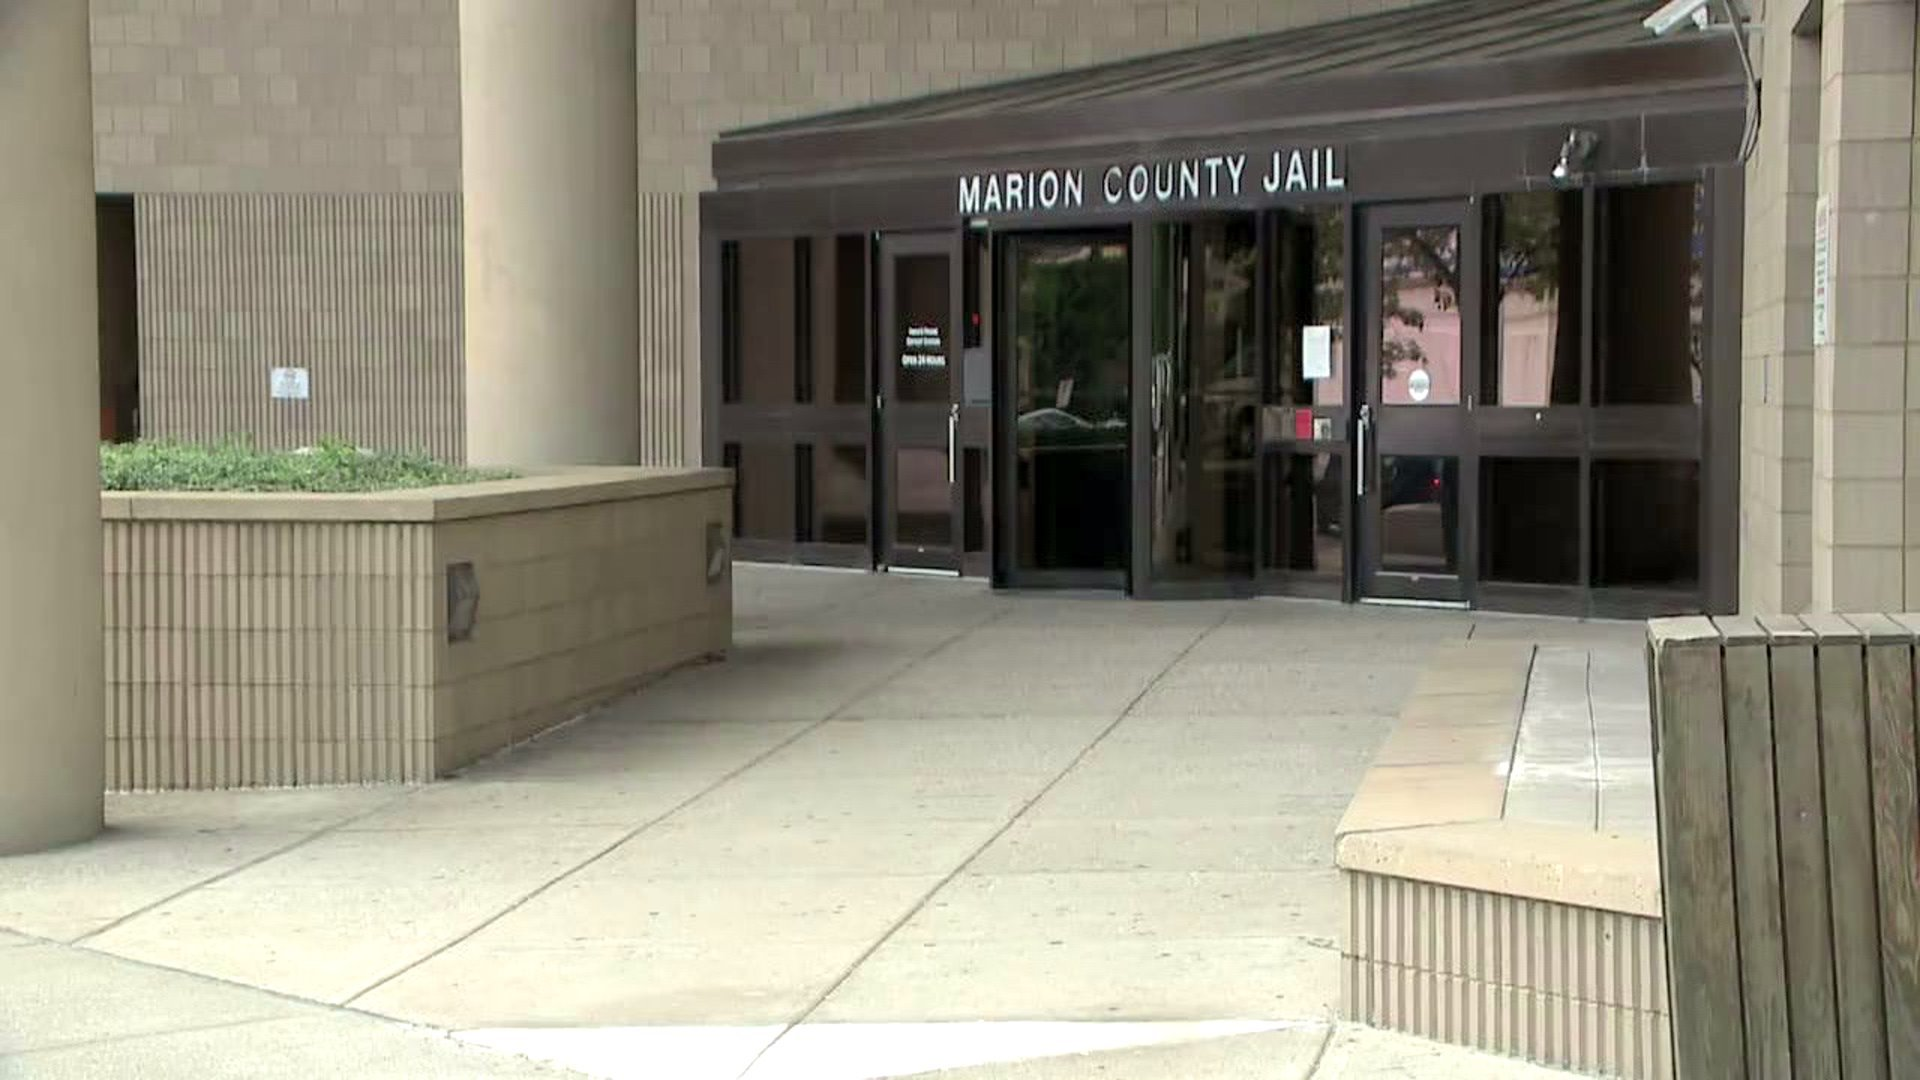 Marion County Jail rel...